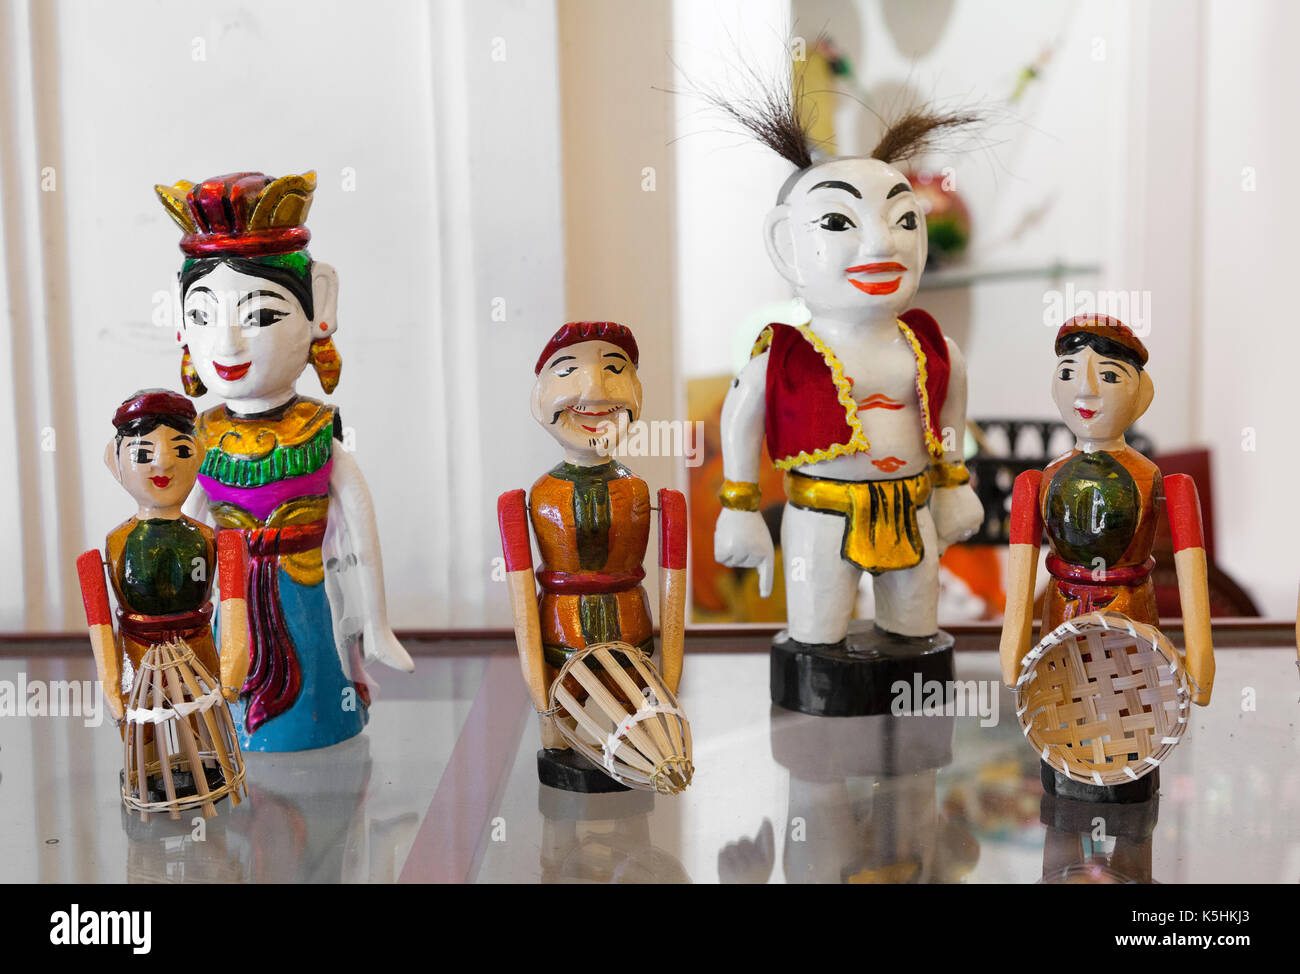 Thăng Long water theatrical wooden puppets, Hanoi, Vietnam Stock Photo